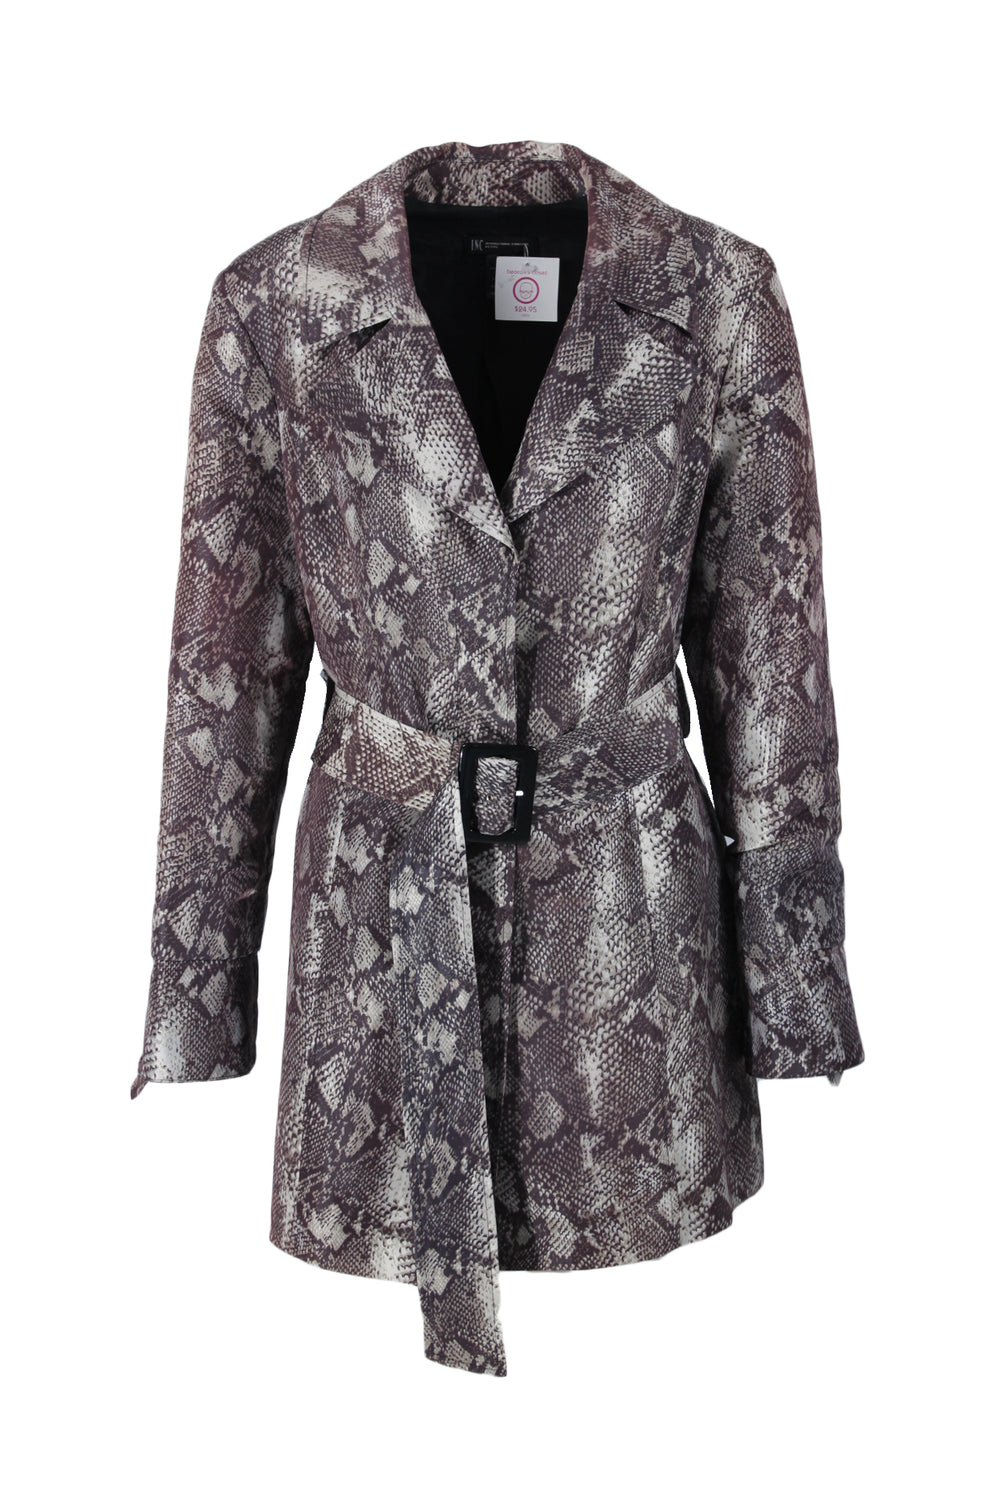 i.n.c grey trench jacket. features snake print pattern & button down closure.